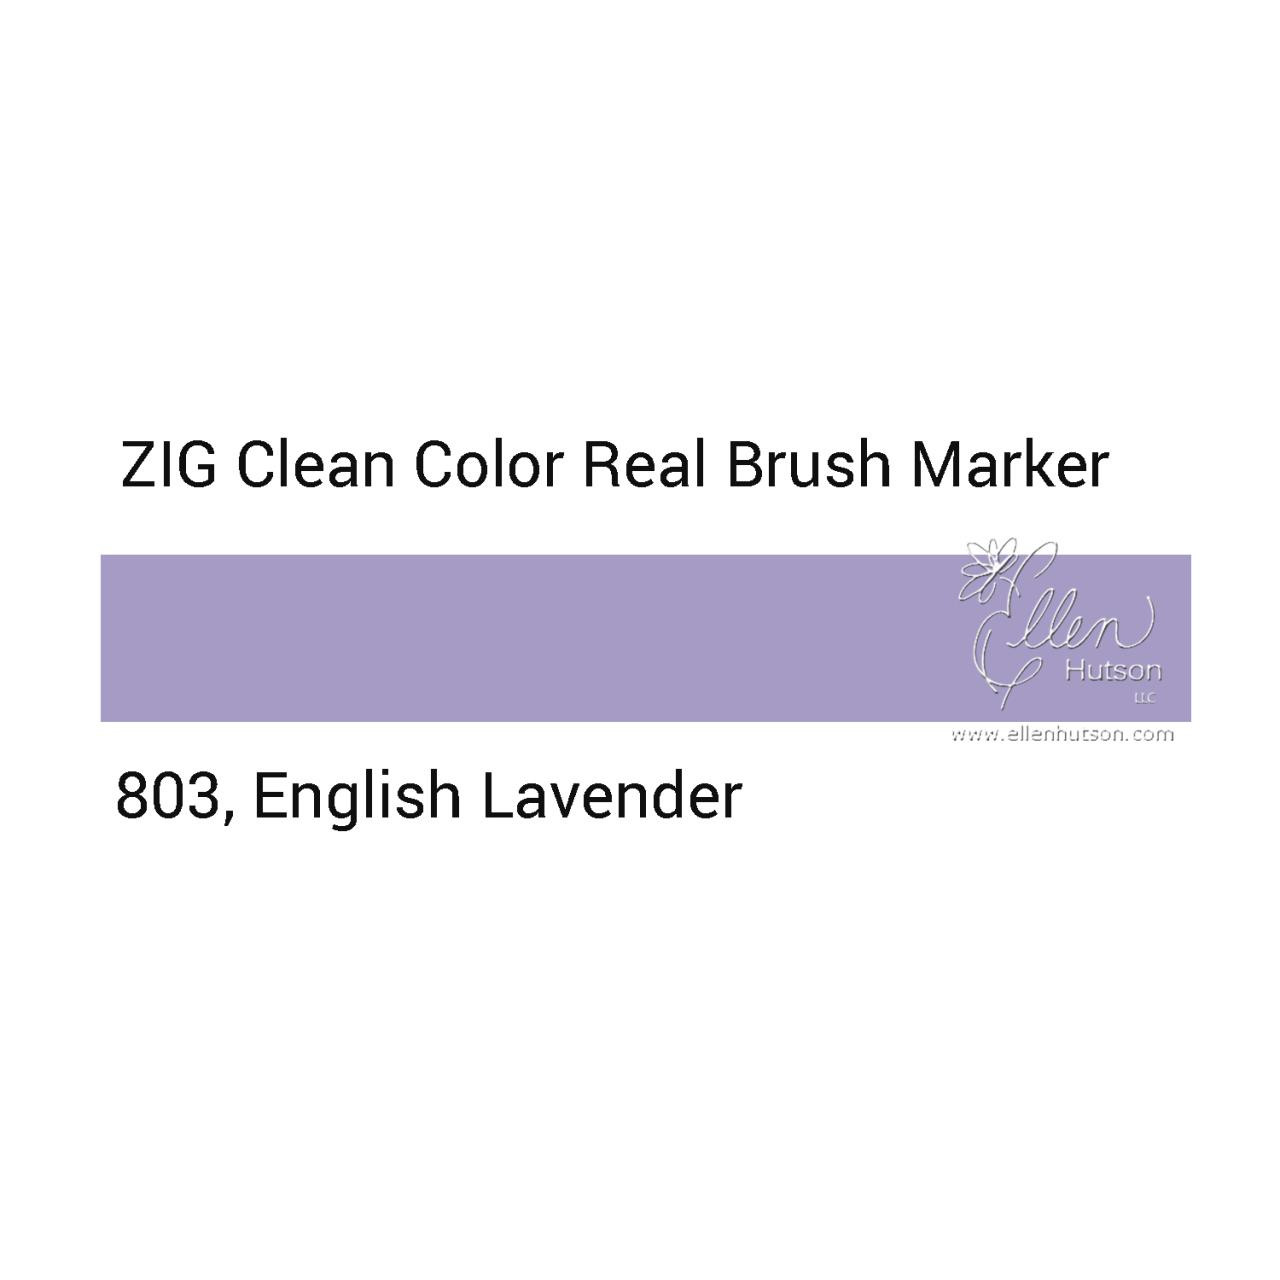 803 - English Lavender, ZIG Clean Color Real Brush Marker -